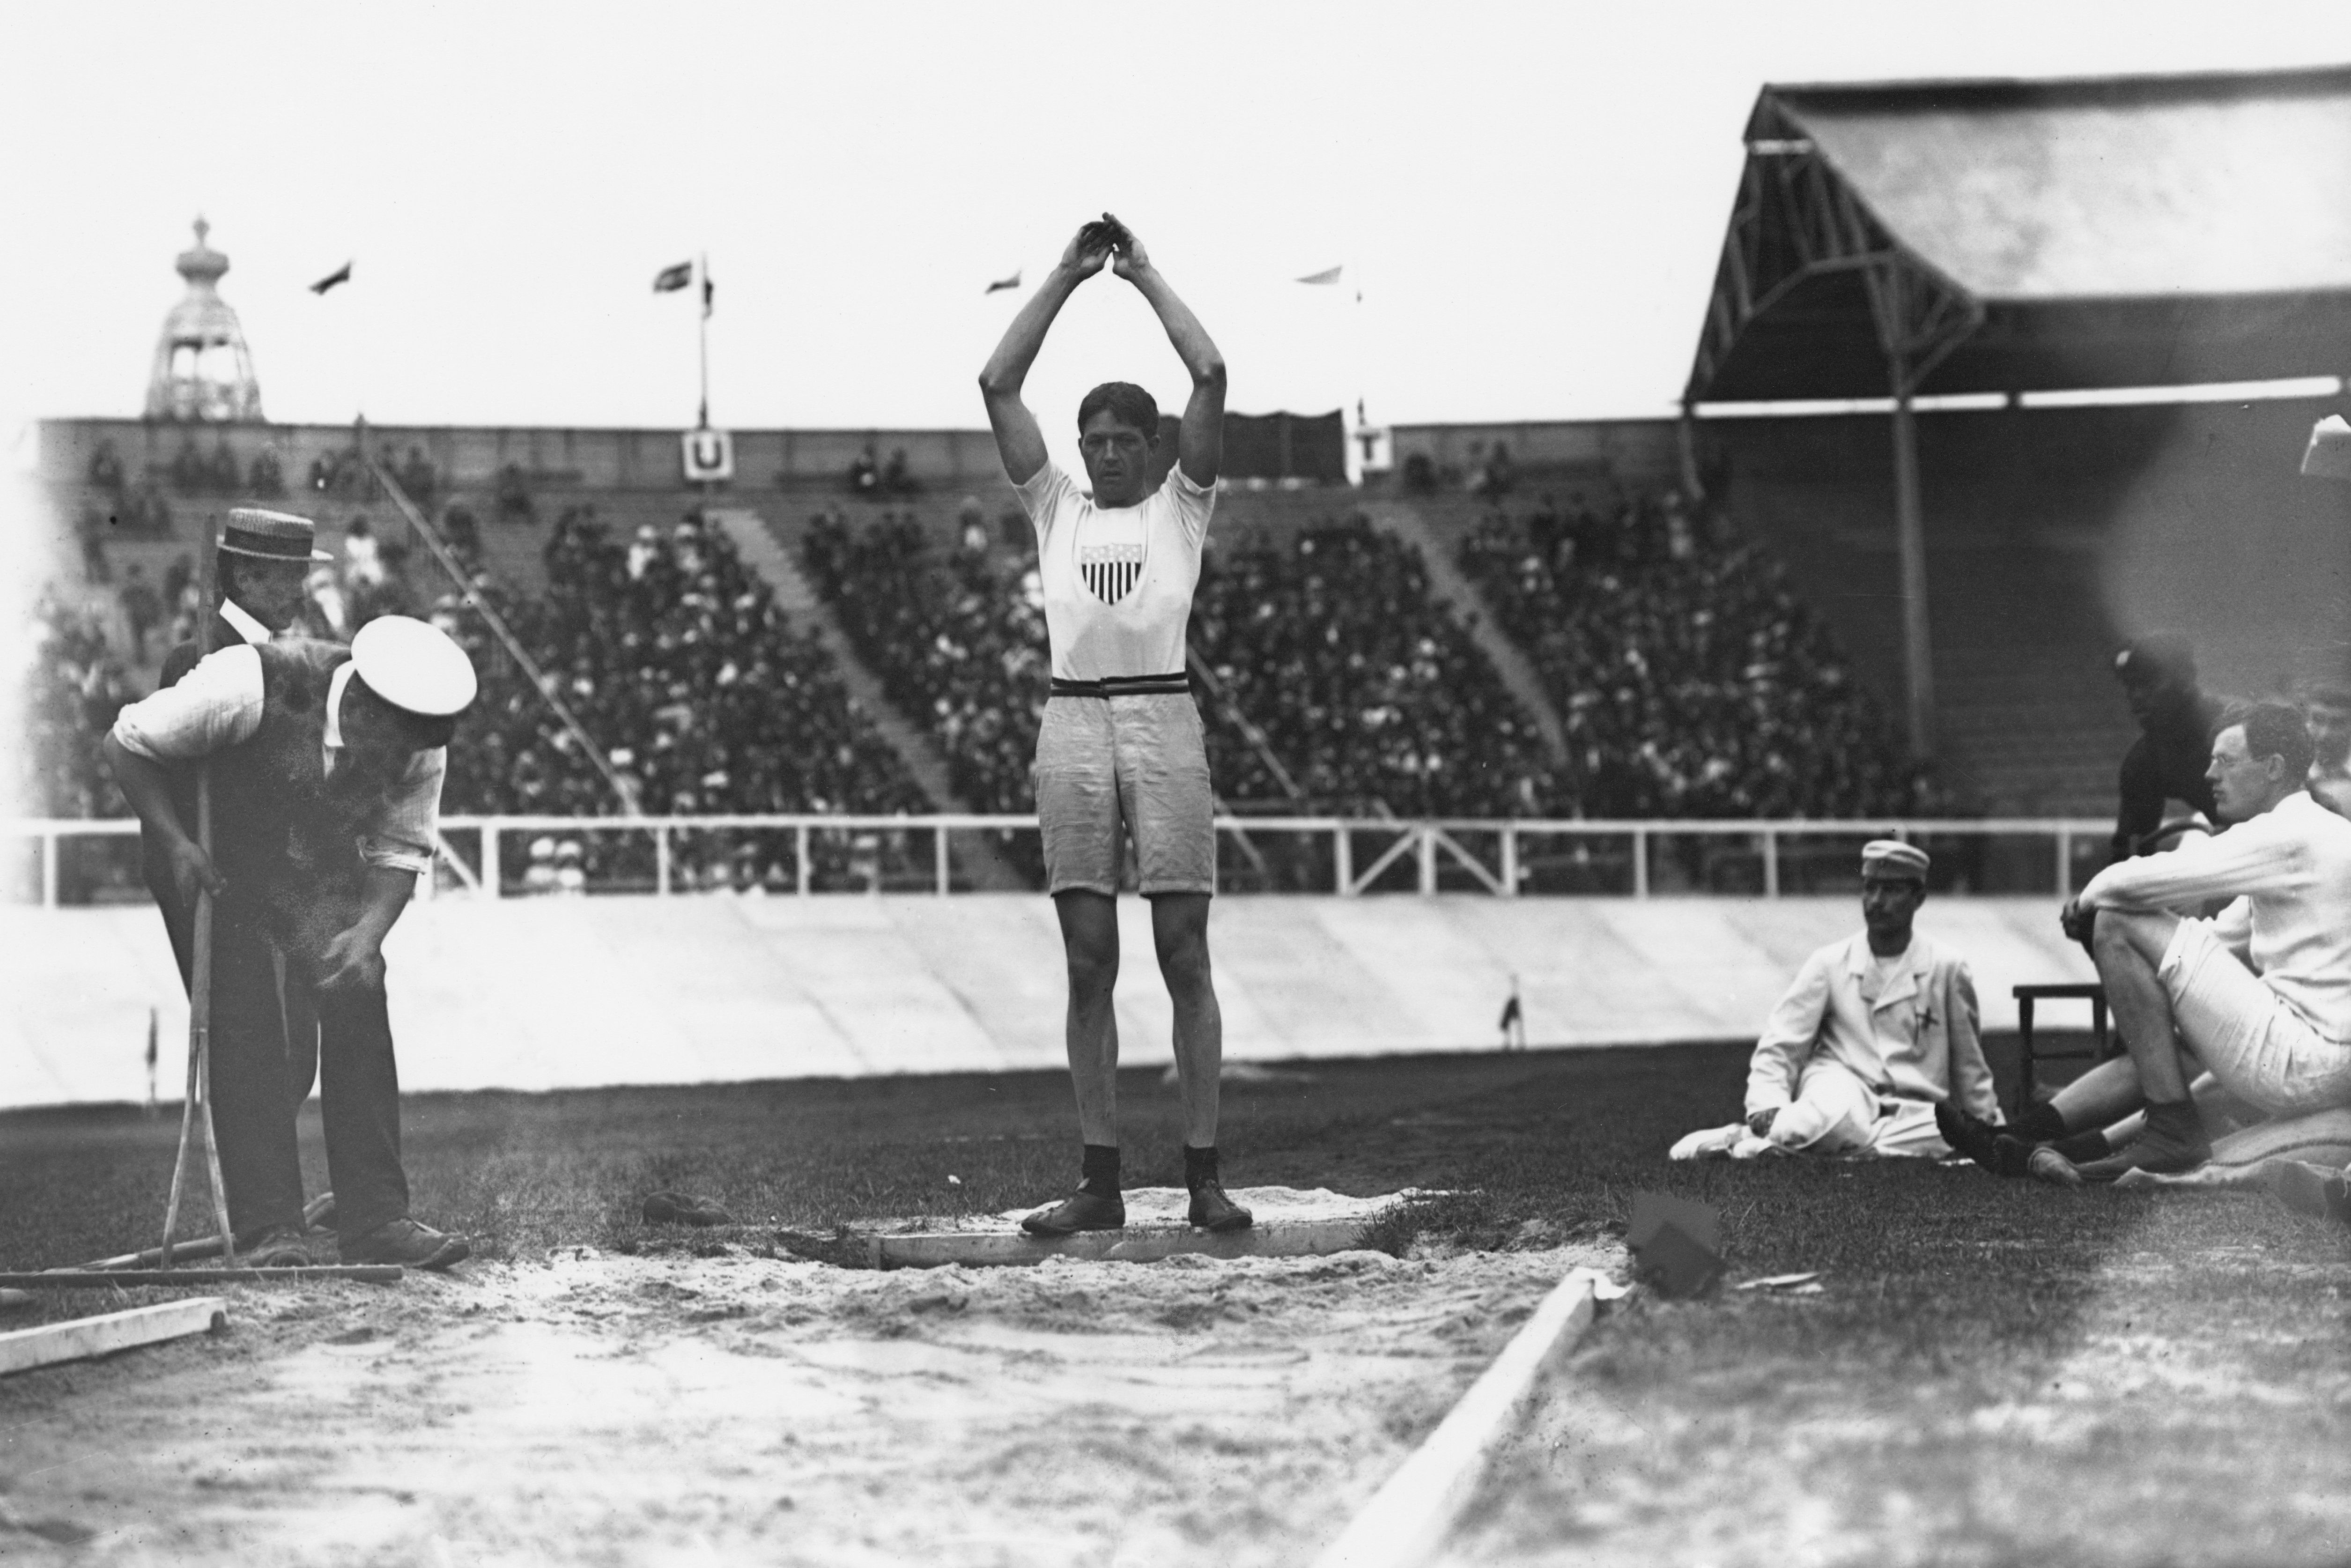 Ray Ewry at the 1908 Summer Olympics in London